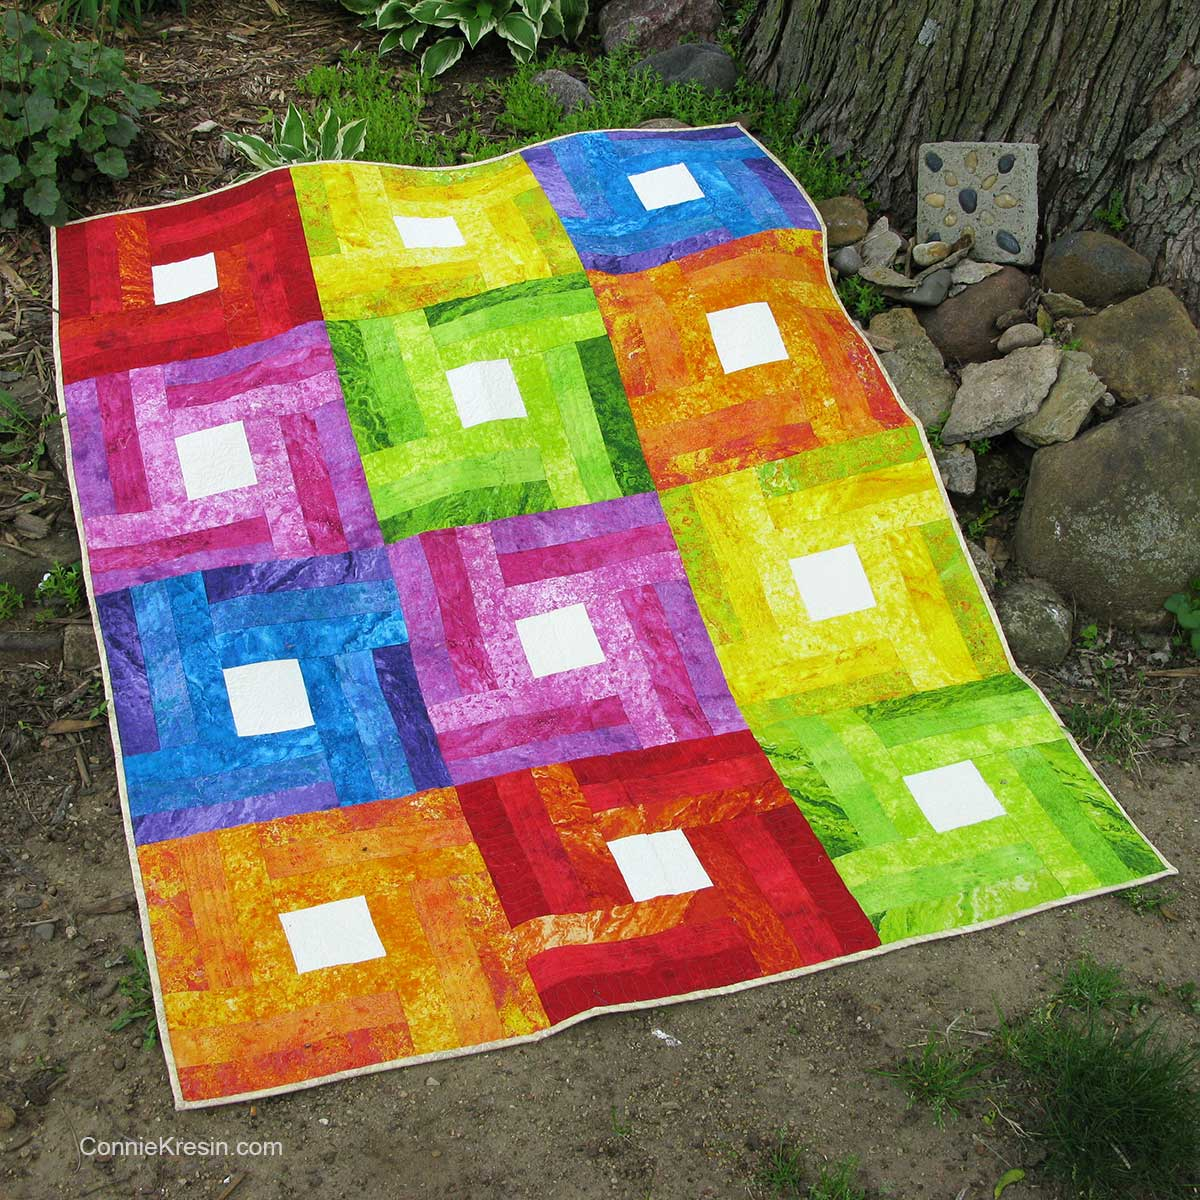 Rainbow Baby Quilt in the grass